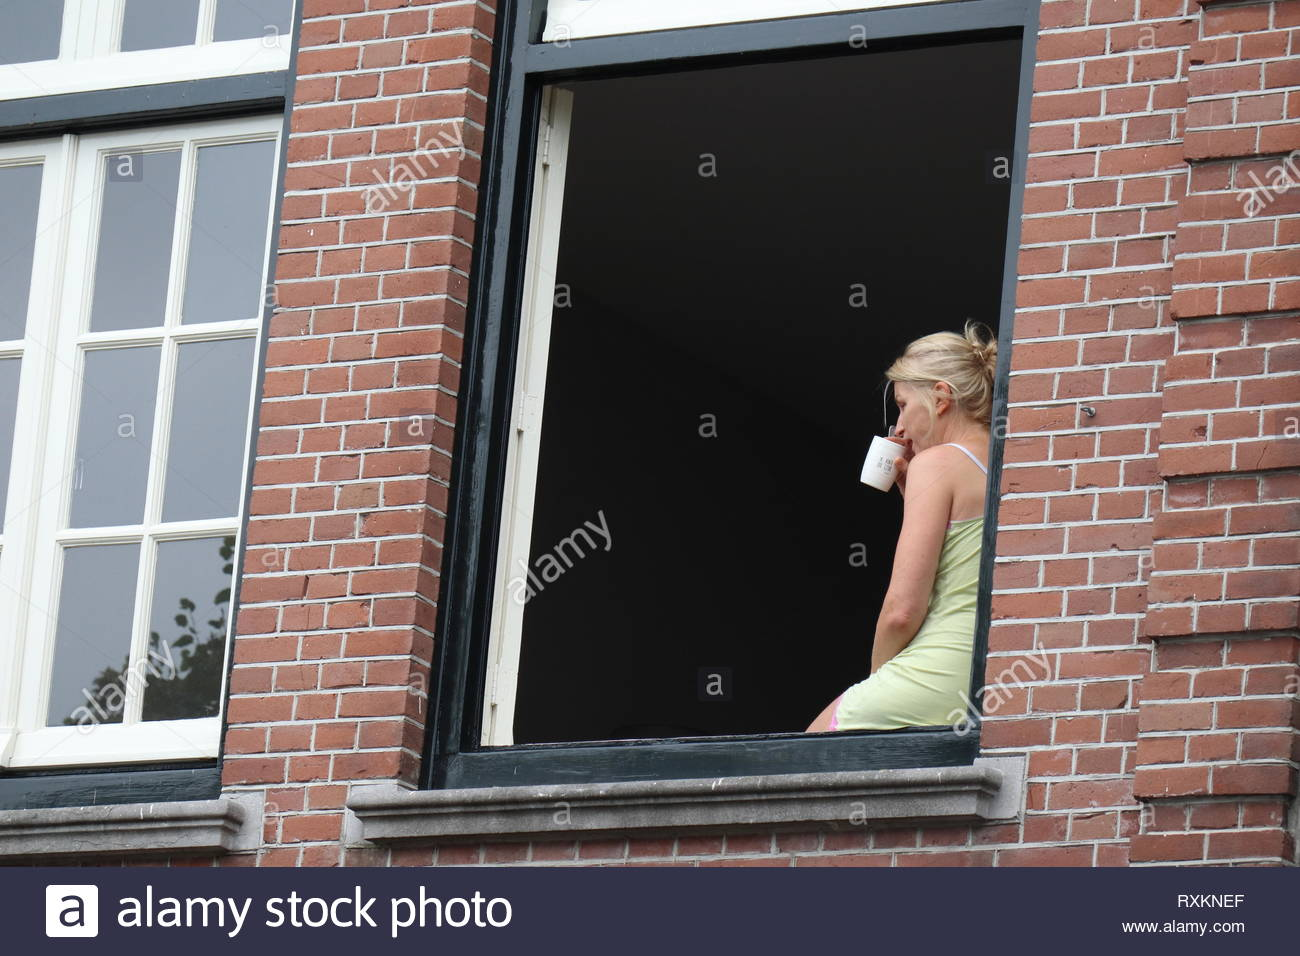 Netherland, Muiden, 8/19/2018: Coffee drinking dutch woman sitting in window after waking up. - Stock Image